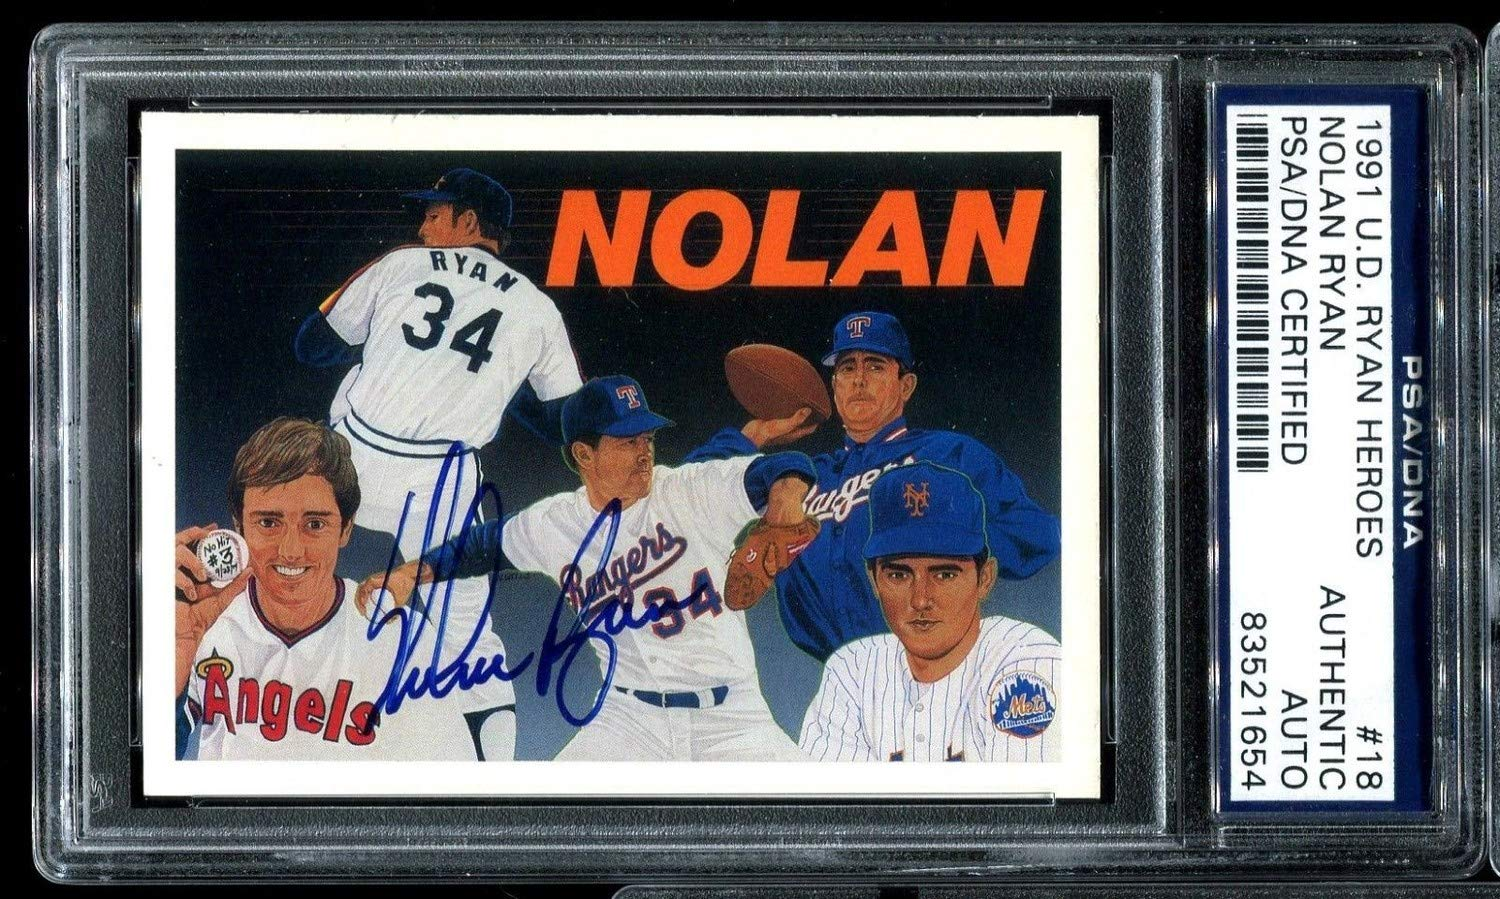 1991 Upper Deck Nolan Ryan Heroes #18 Checklist Autographed Signed PSA/DNA Authentic D